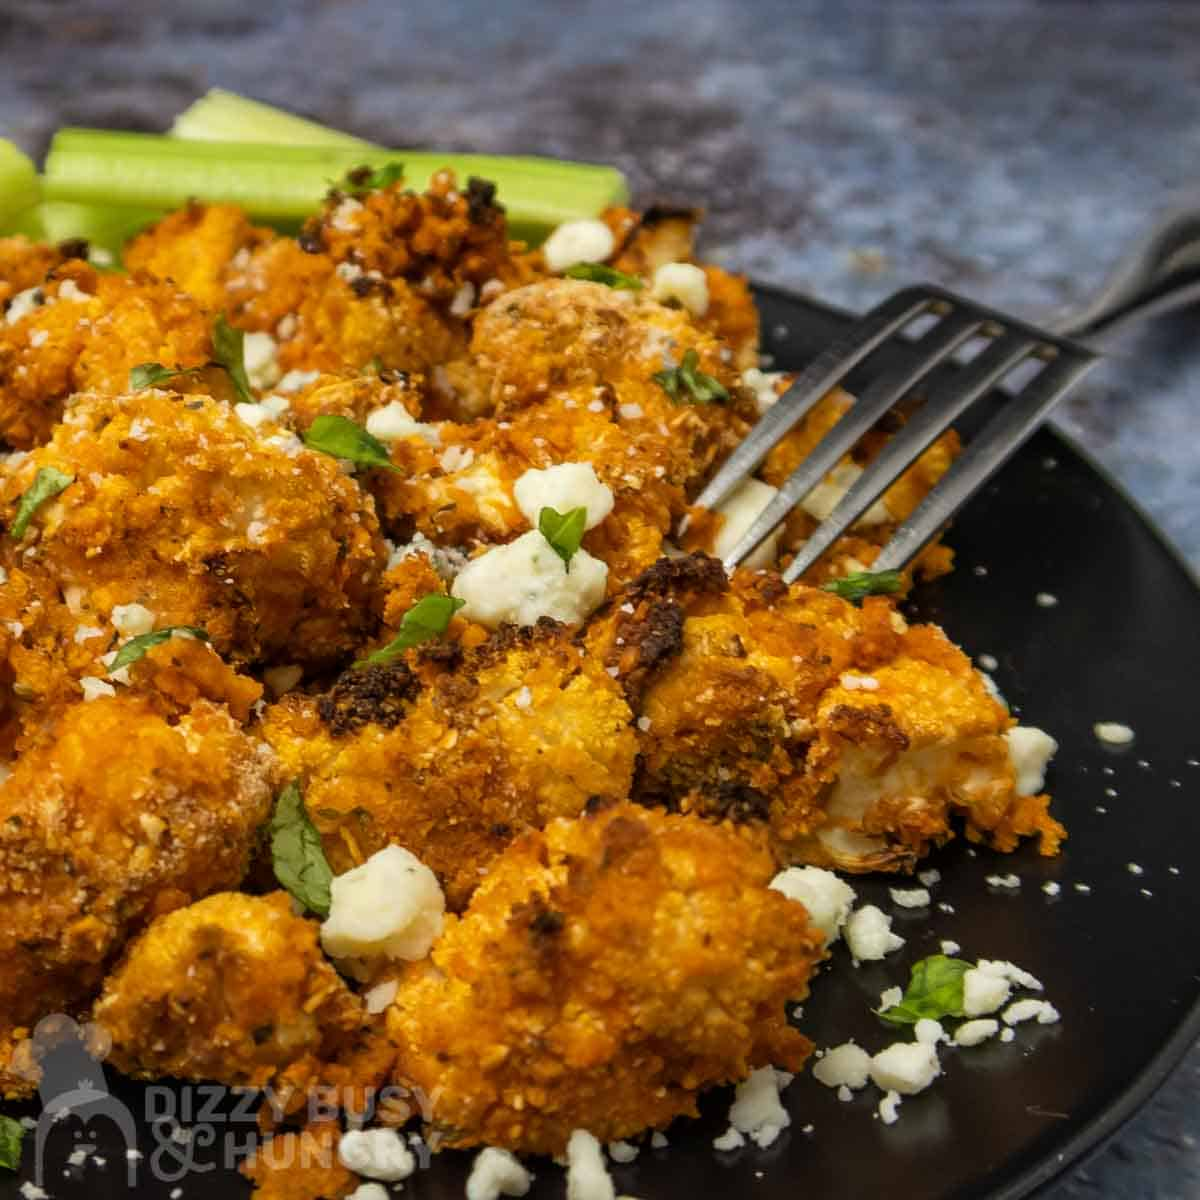 Close up shot of buffalo cauliflower on a black plate sprinkled with cheese crumbles and herbs with a fork and celery on the side.